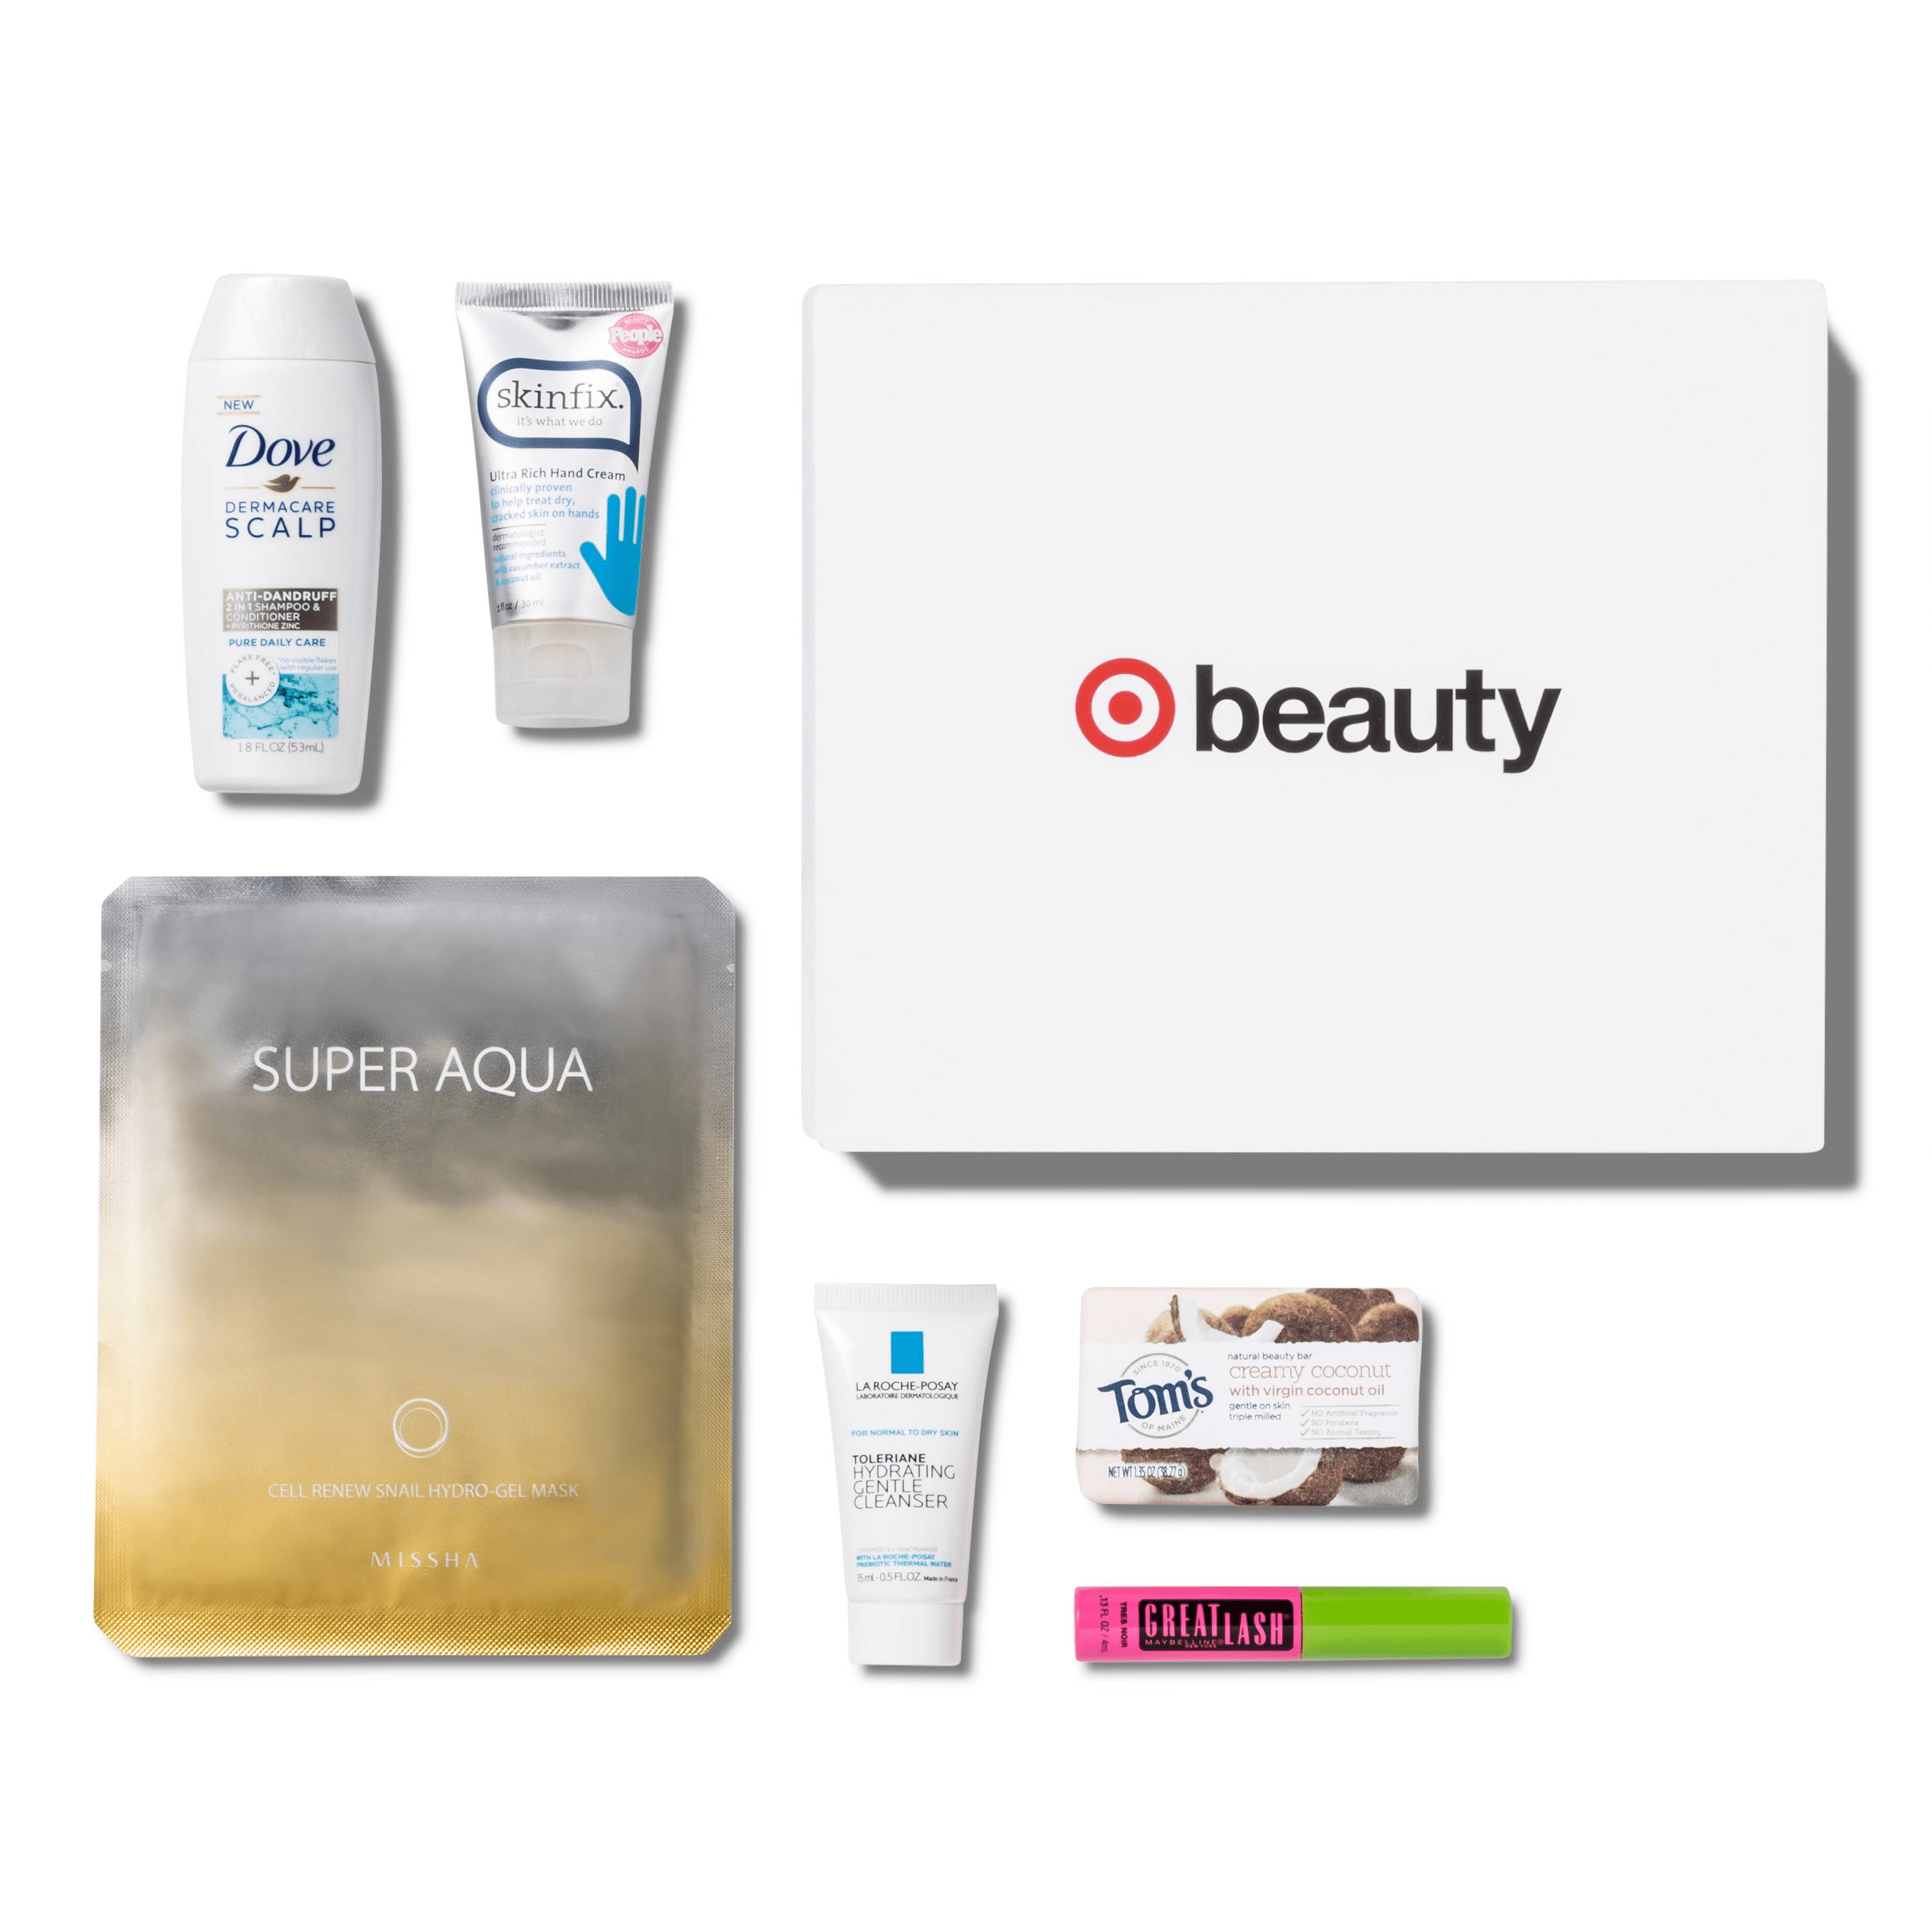 November 2017 Target Beauty Box Available Now!